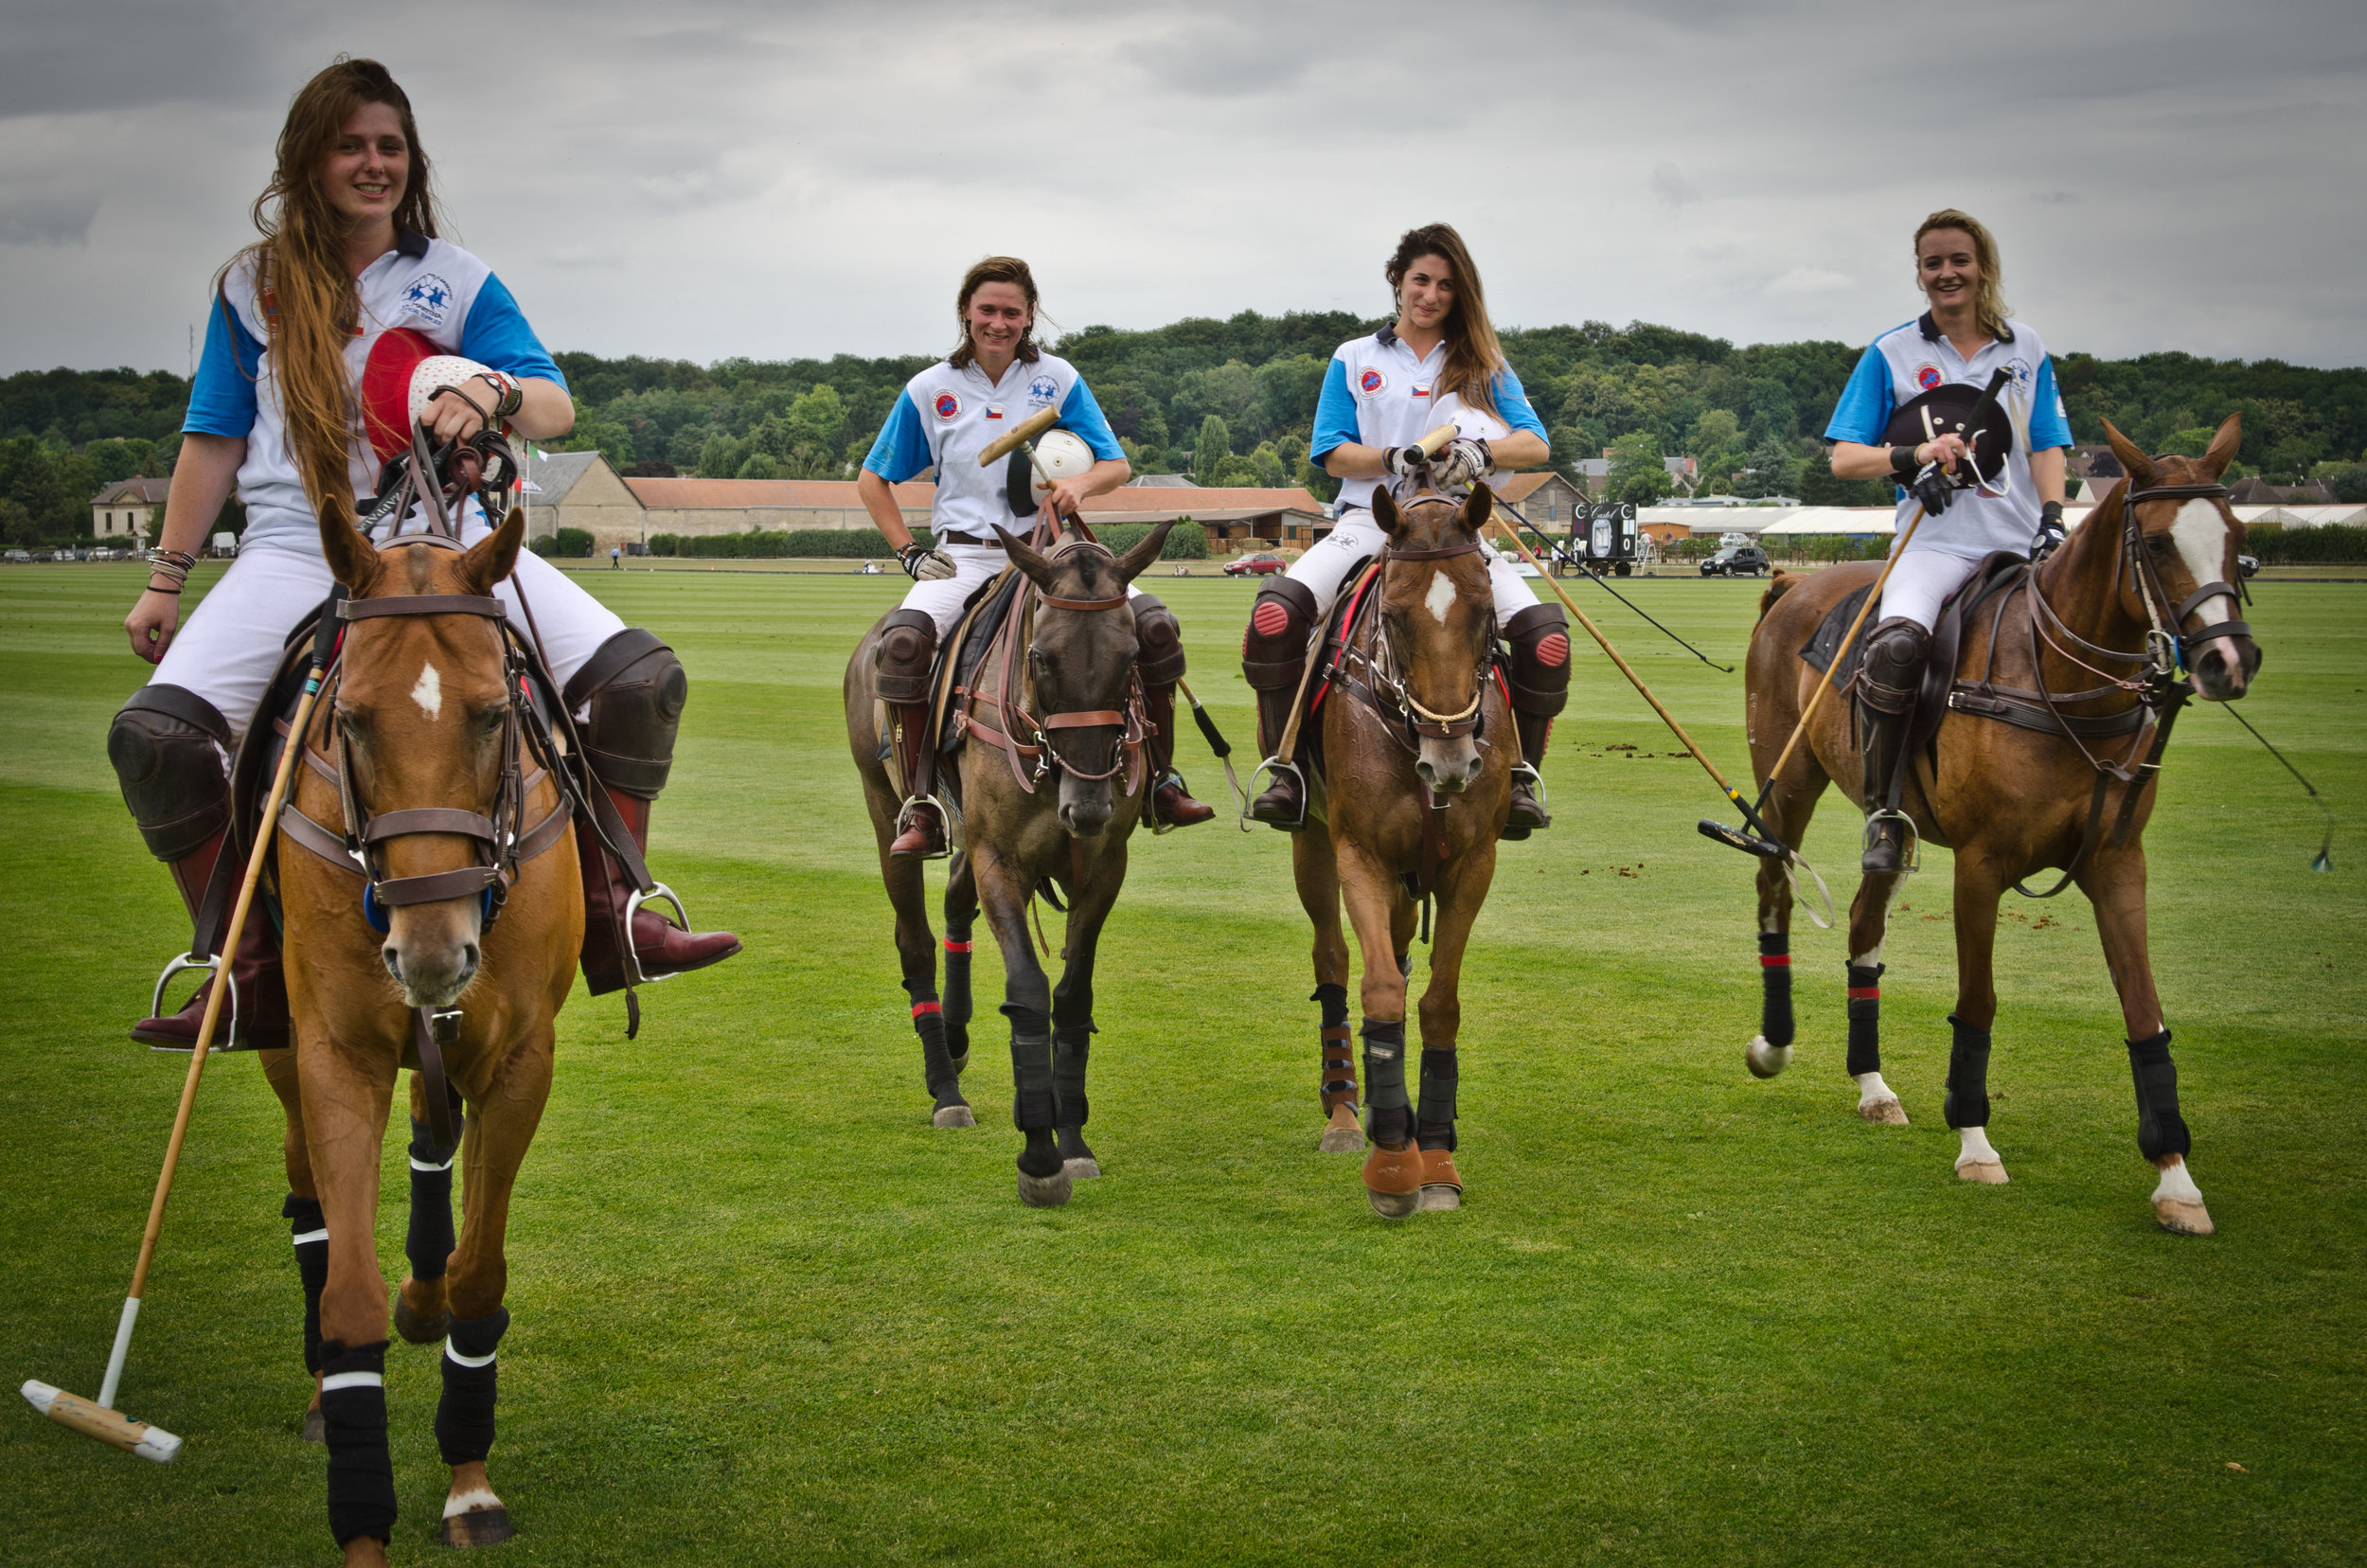 lavinia-fabre-team-franch-girl-women-player-horse-polo